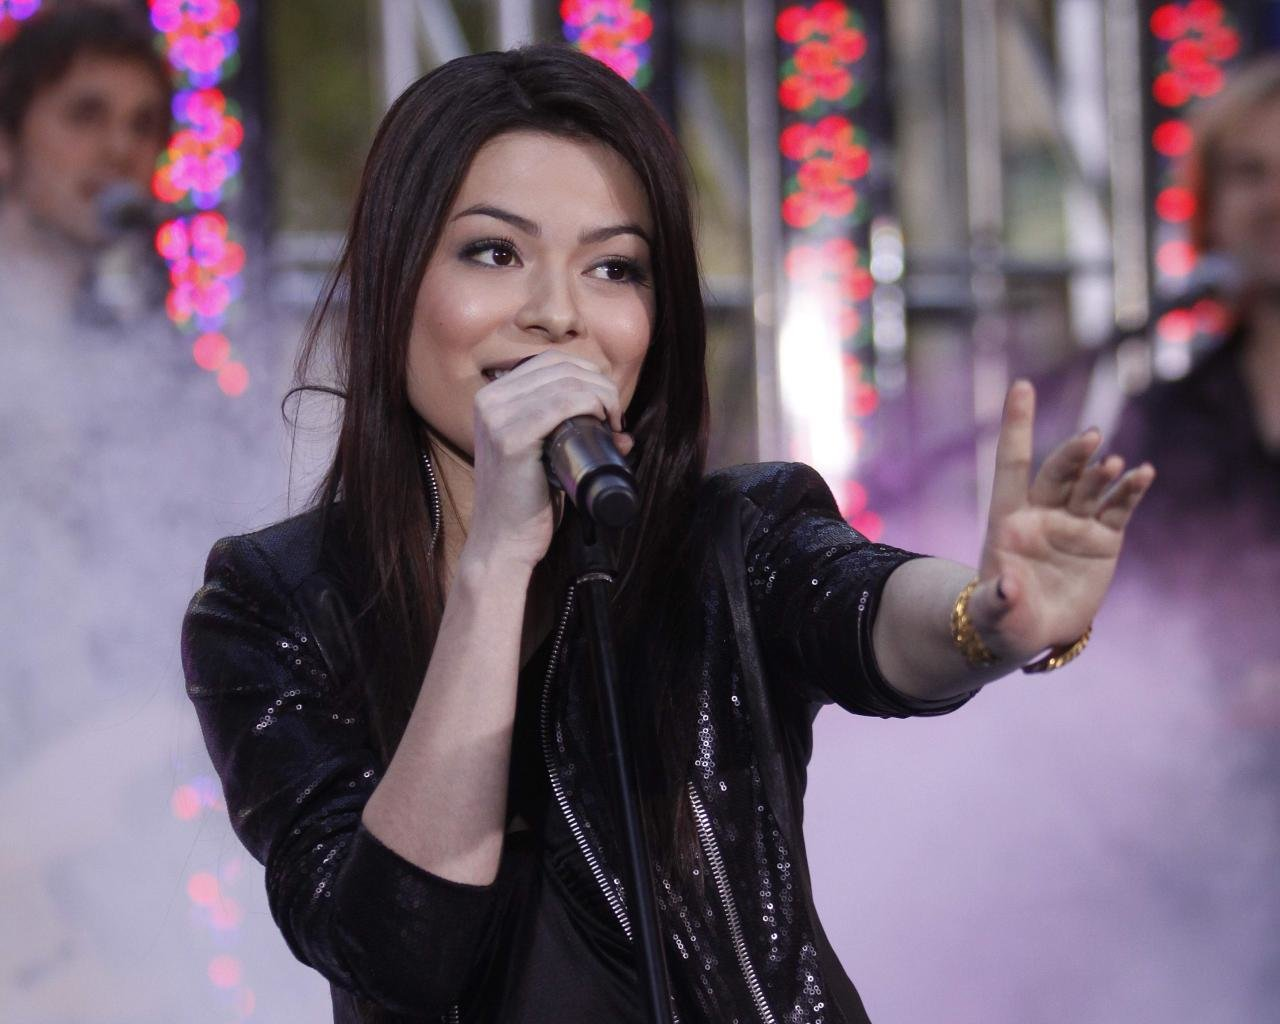 Download hd 1280x1024 Miranda Cosgrove computer background ID:298568 for free